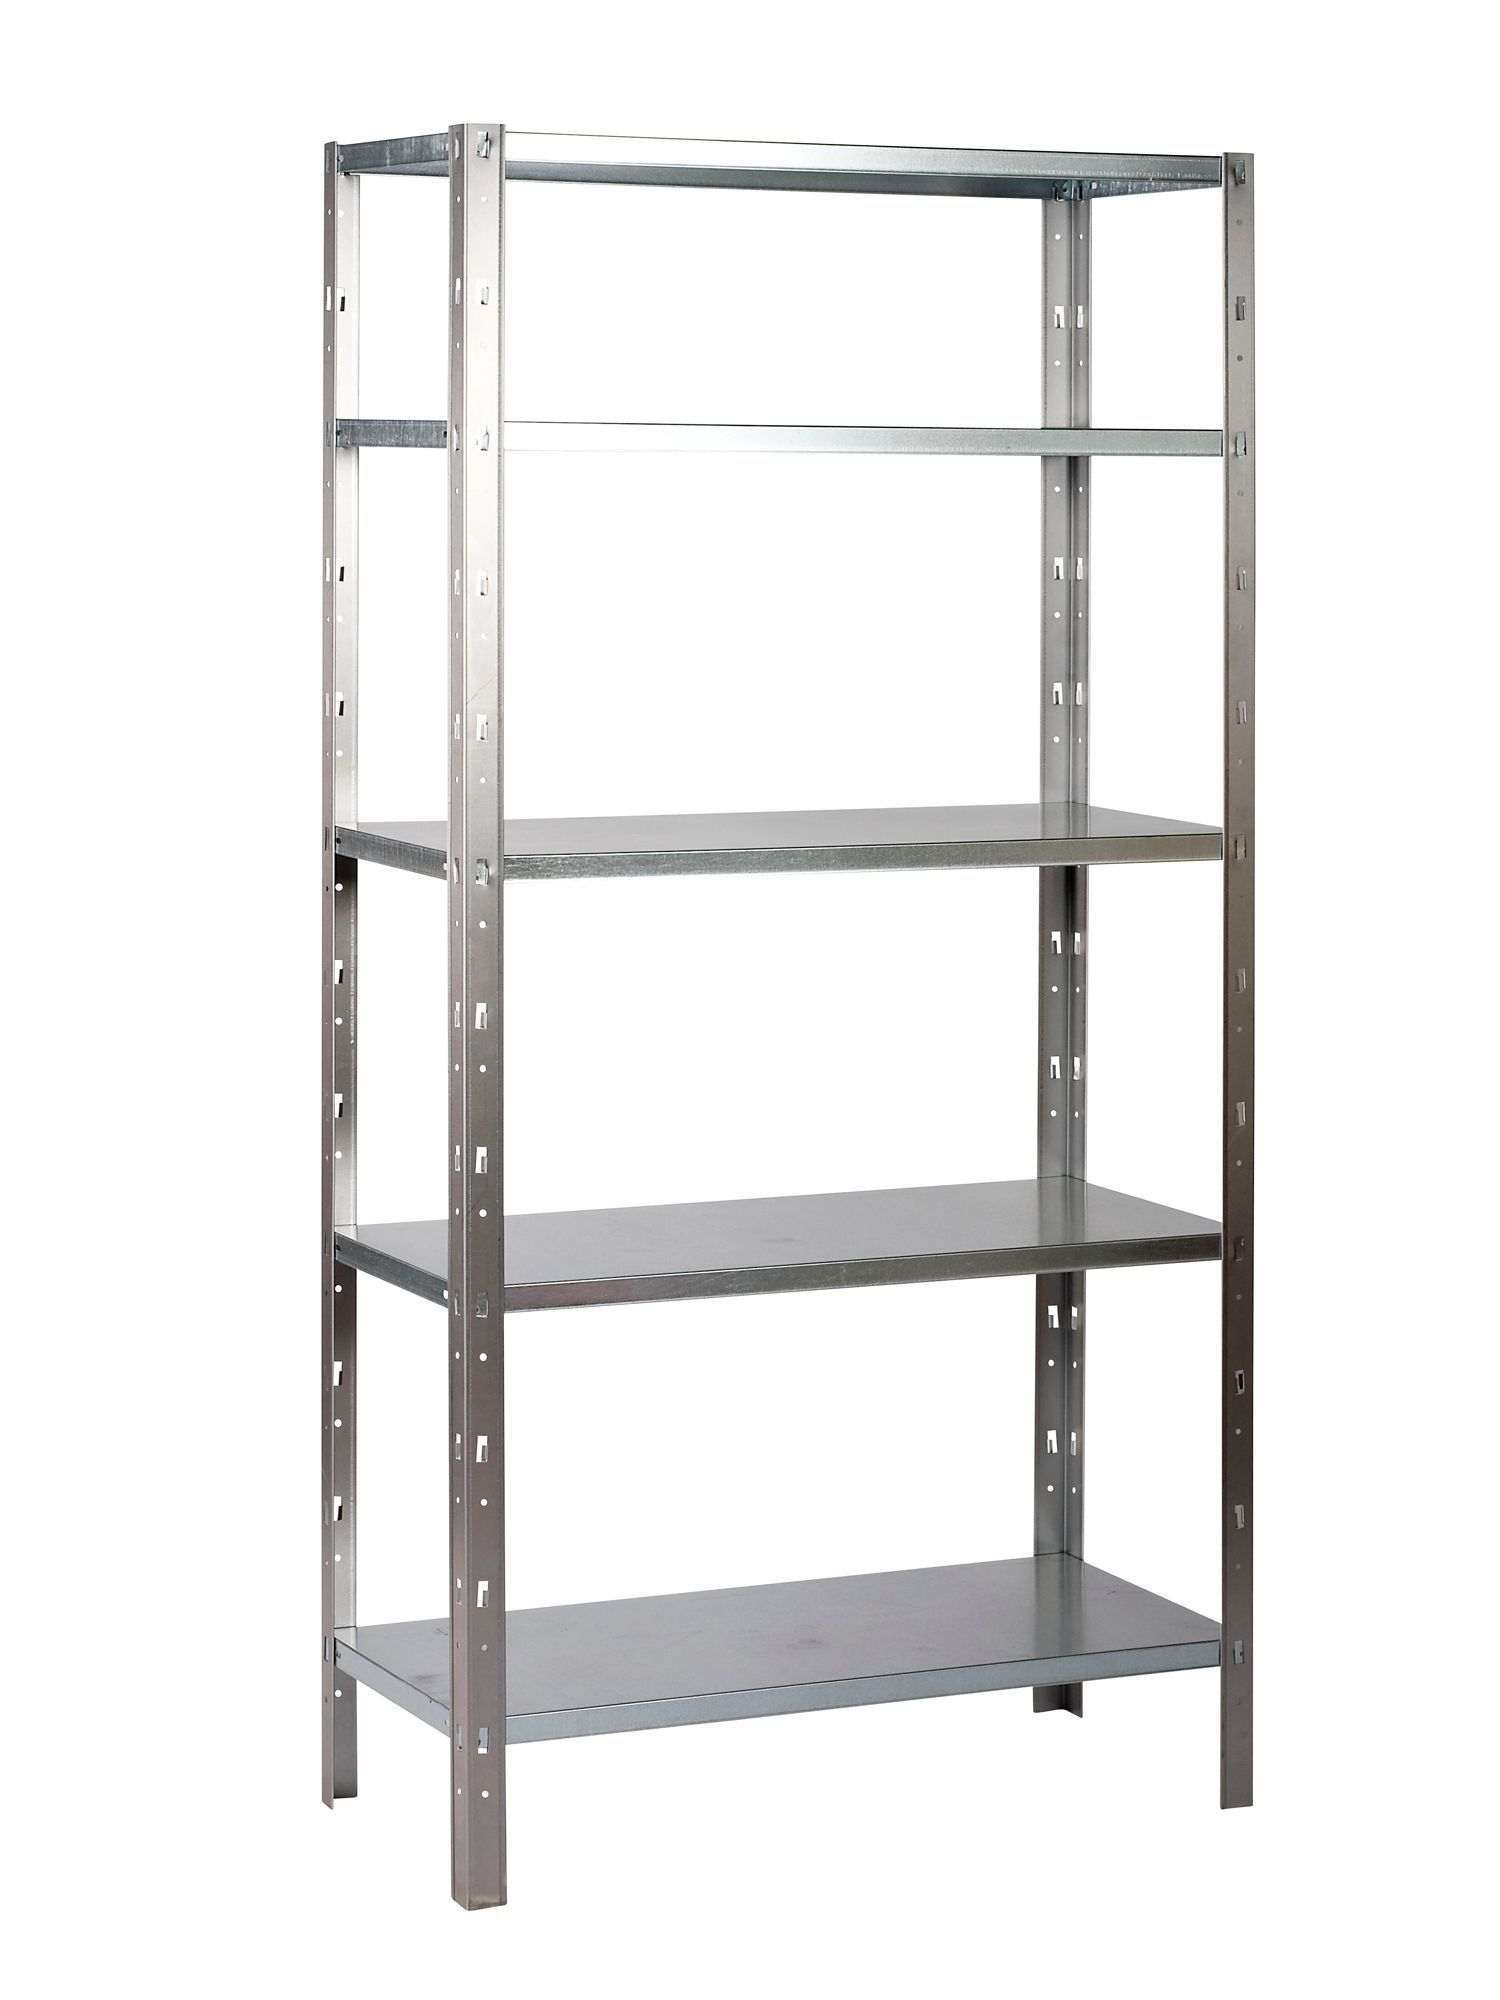 b q 5 shelf steel shelving unit departments diy at b q. Black Bedroom Furniture Sets. Home Design Ideas